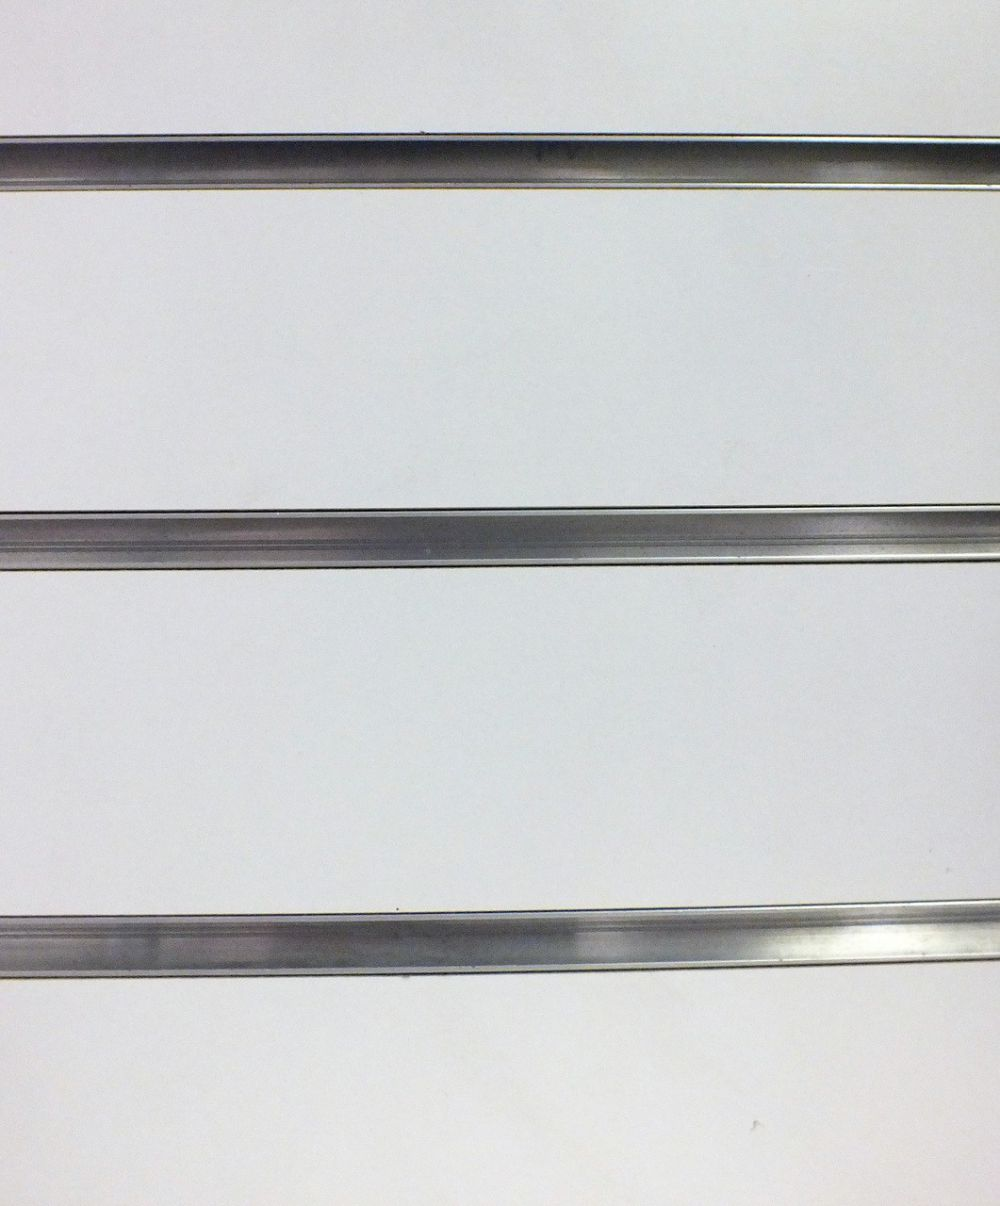 White Slatwall with Metal Extrusions